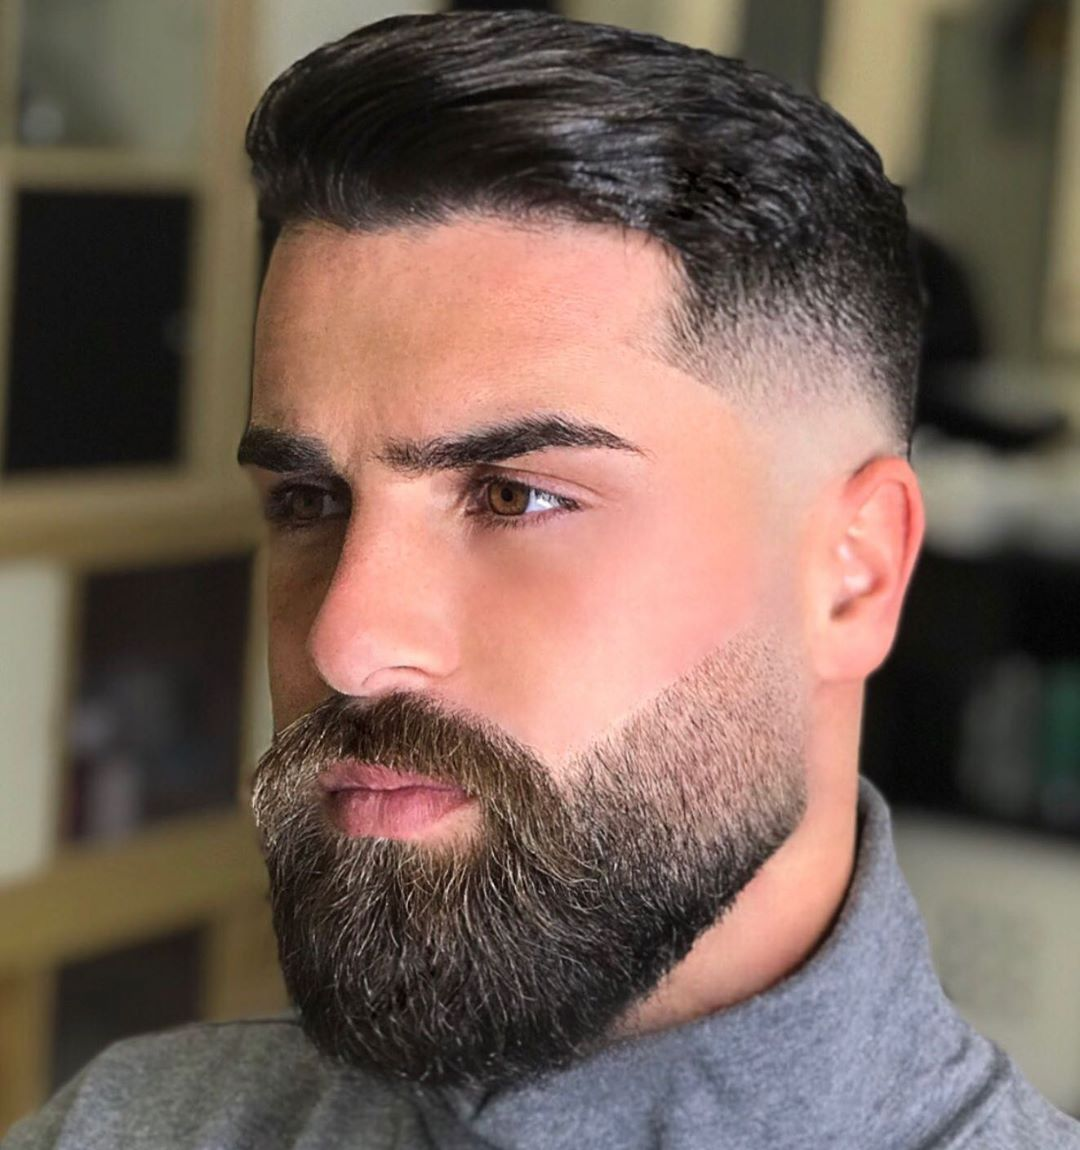 Timeless 50 Haircuts For Men 2019 Trends Stylesrant Beard Styles Short Beard Fade Faded Beard Styles